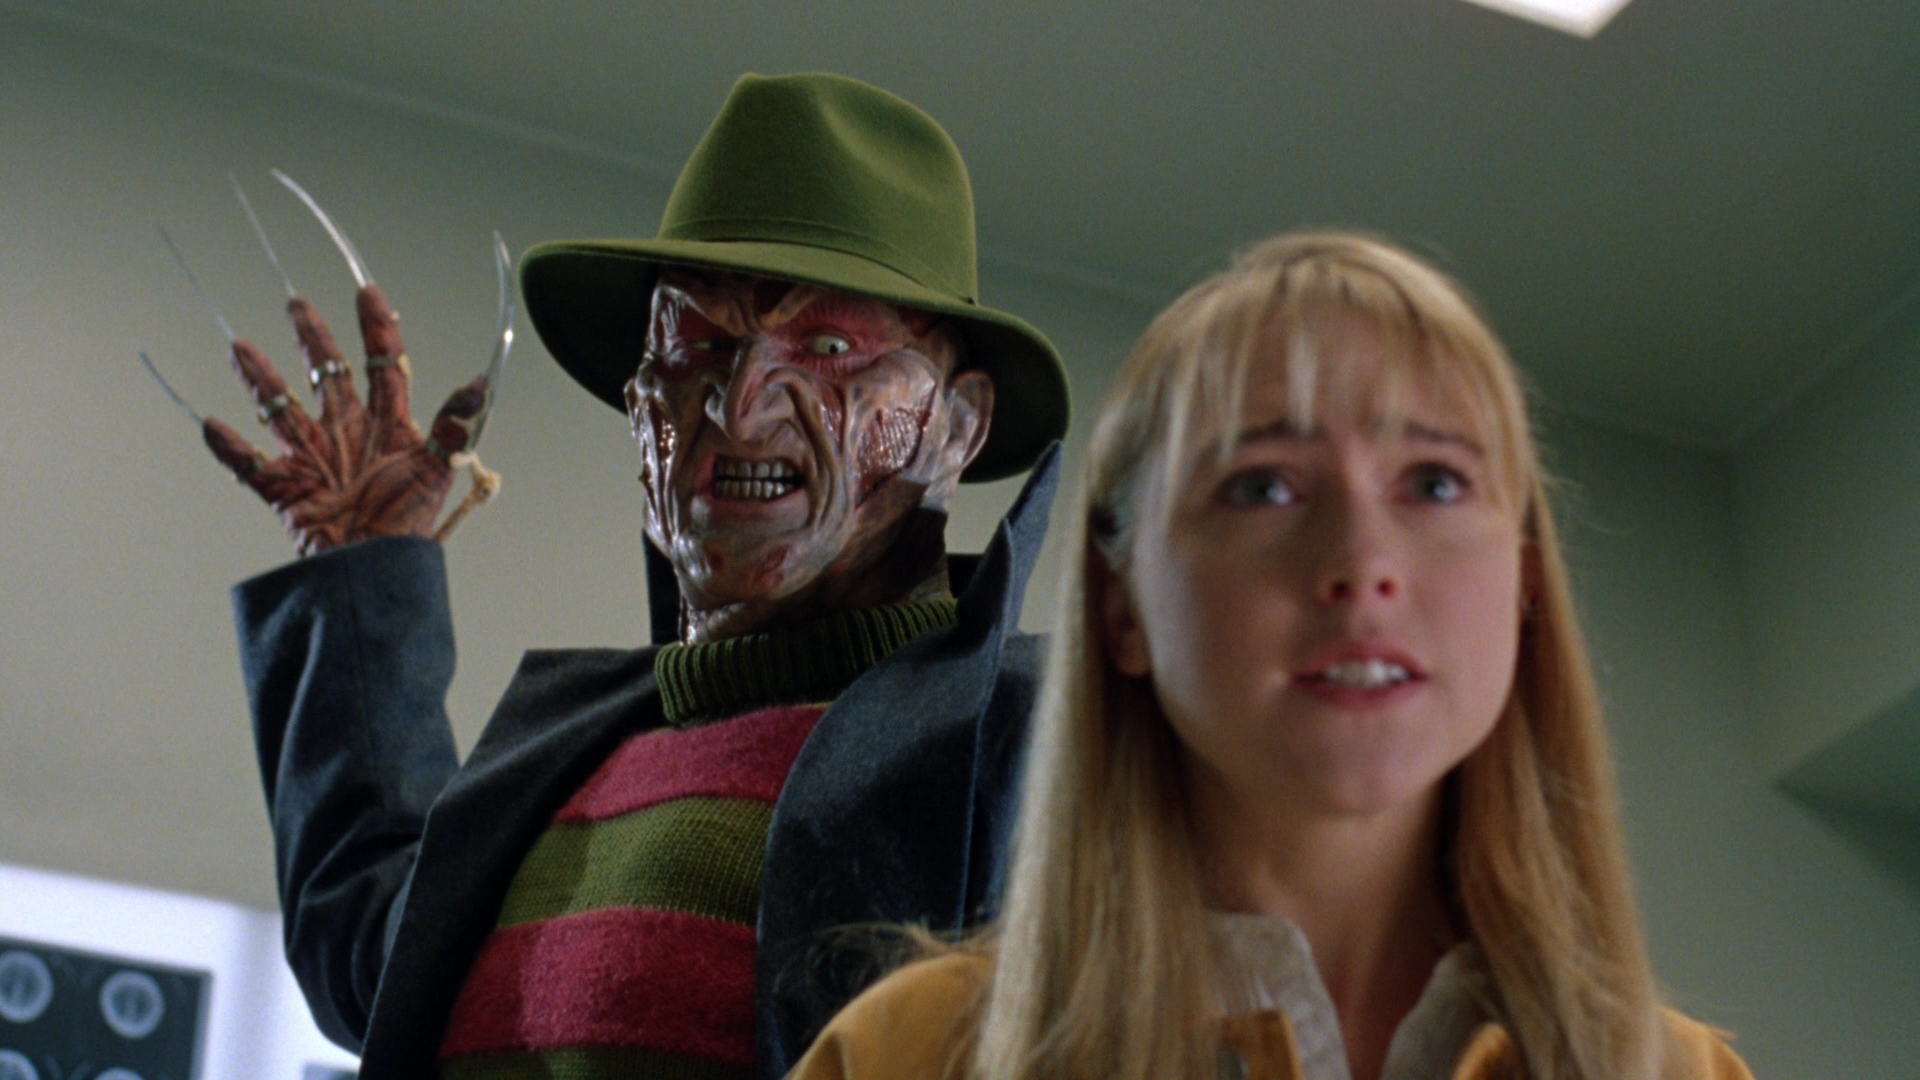 the inspiration behind the horror film nightmare on elm street by wes craven When looking at the real life inspiration behind a horror film the real story behind a nightmare on elm street director wes craven.